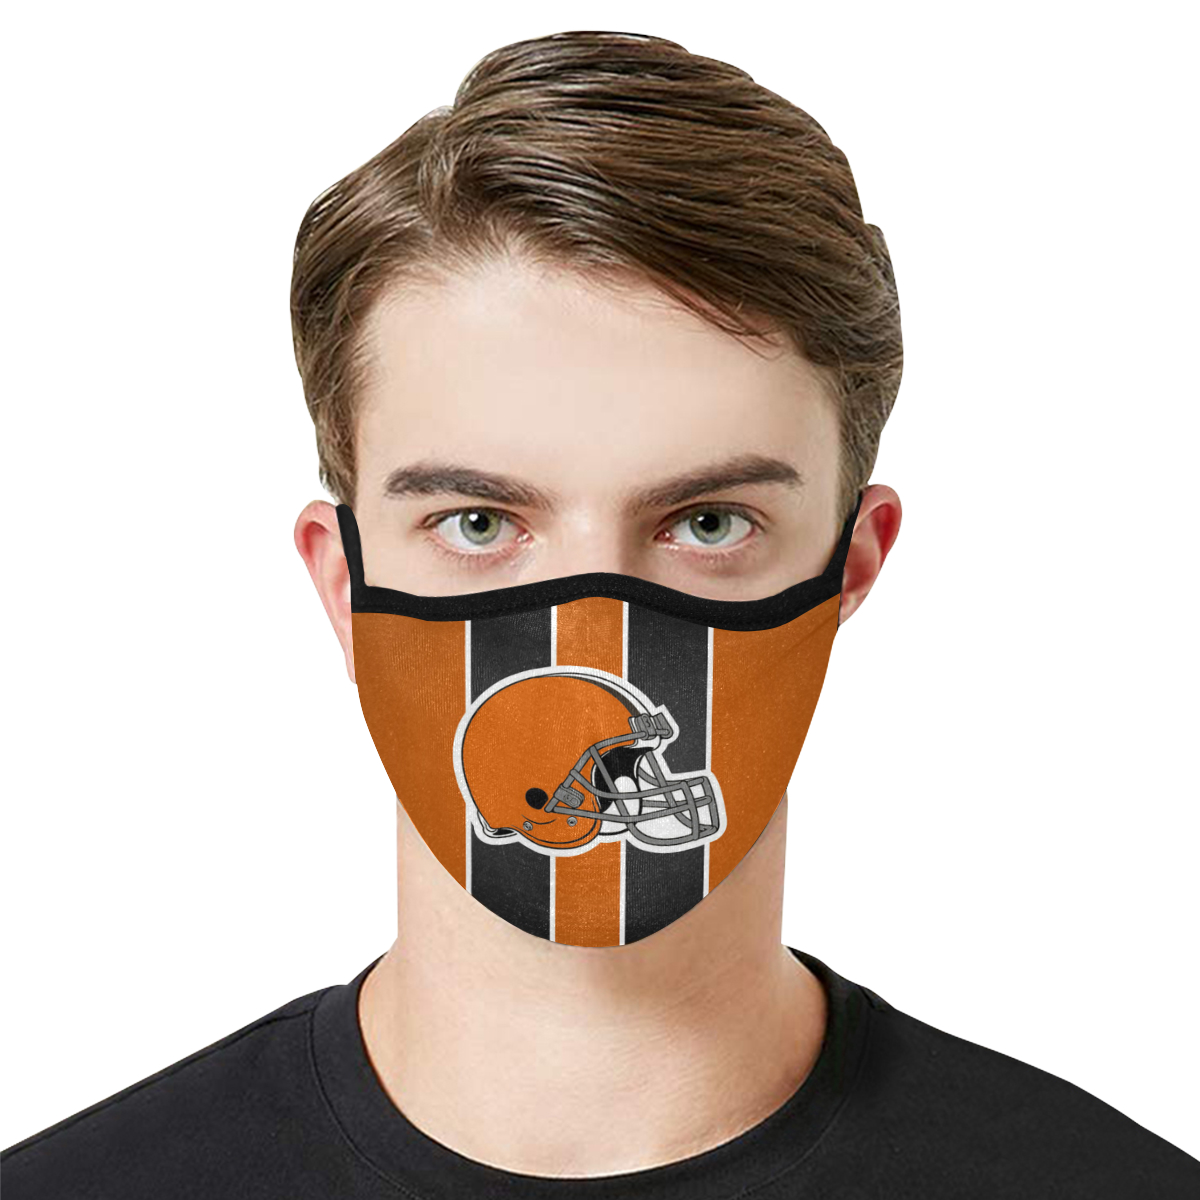 National football league cleveland browns face mask 2